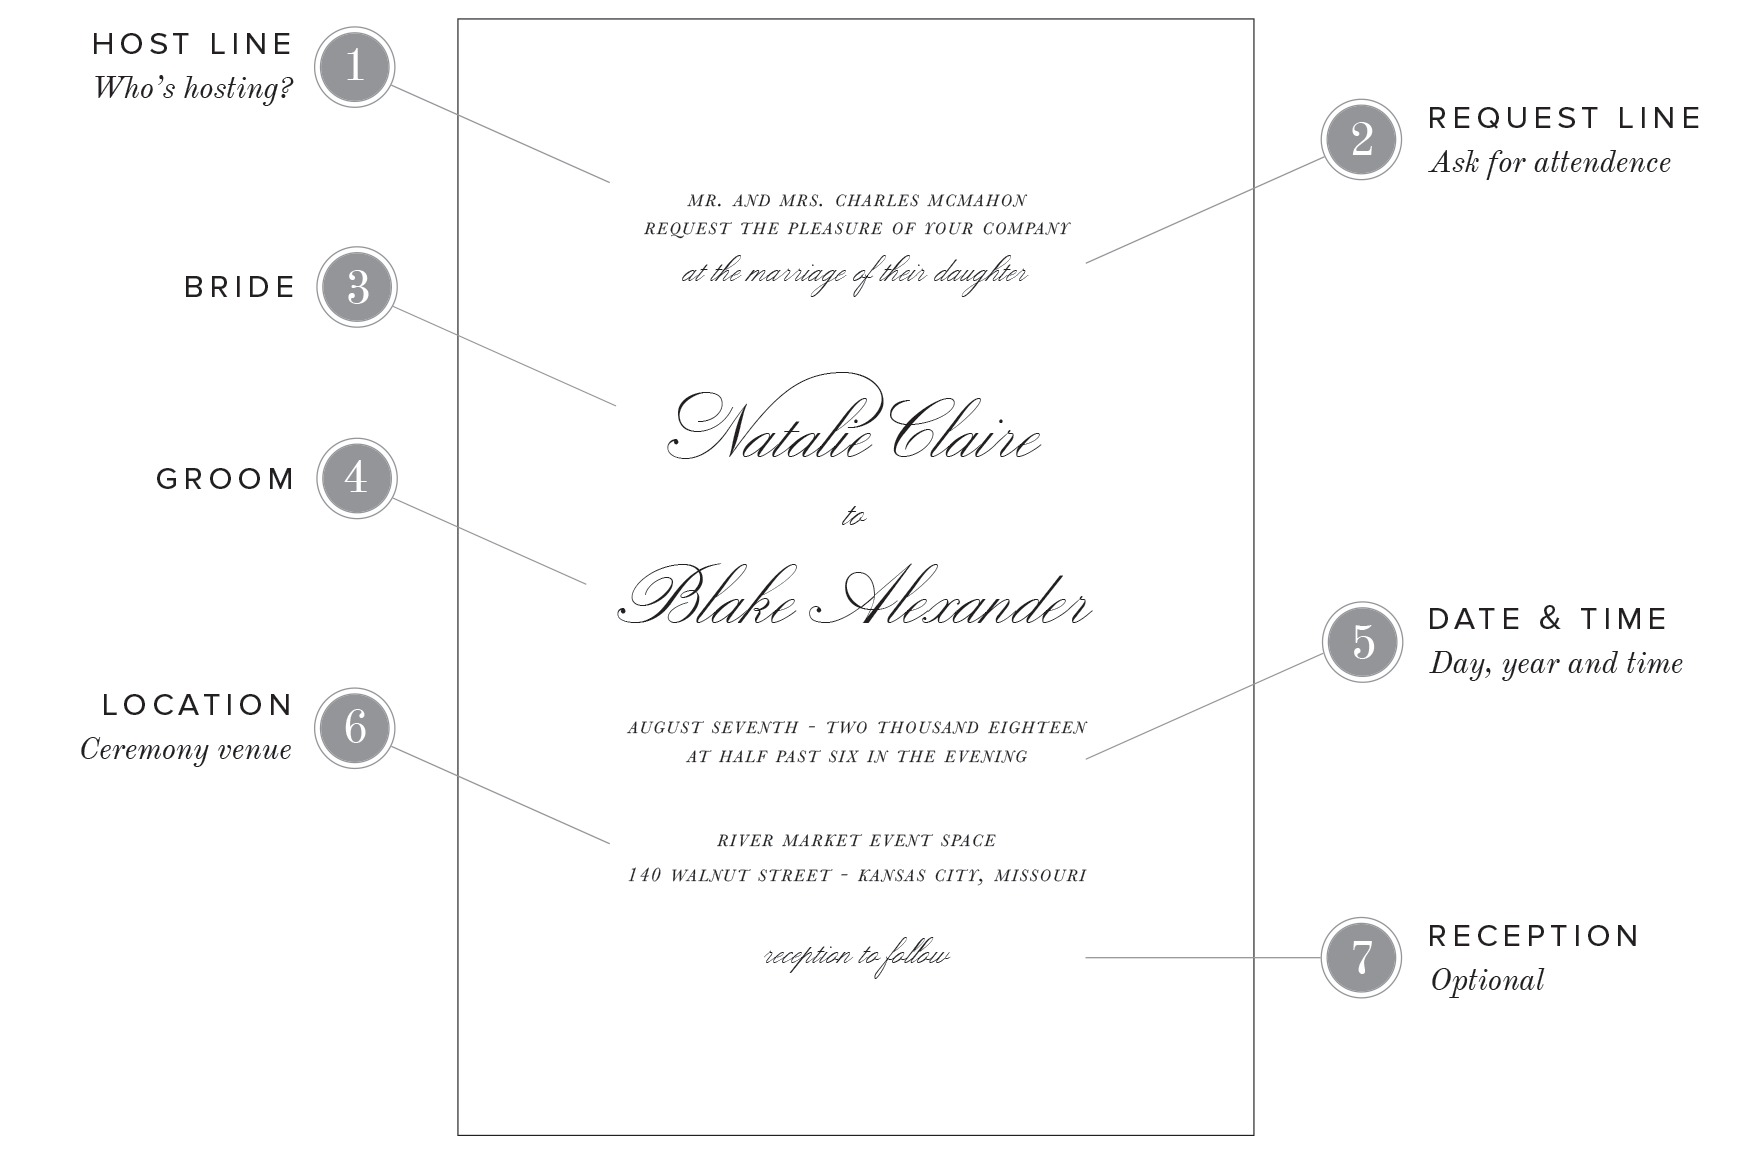 How To Write Invitation For Wedding: Wedding Invitation Wording Examples